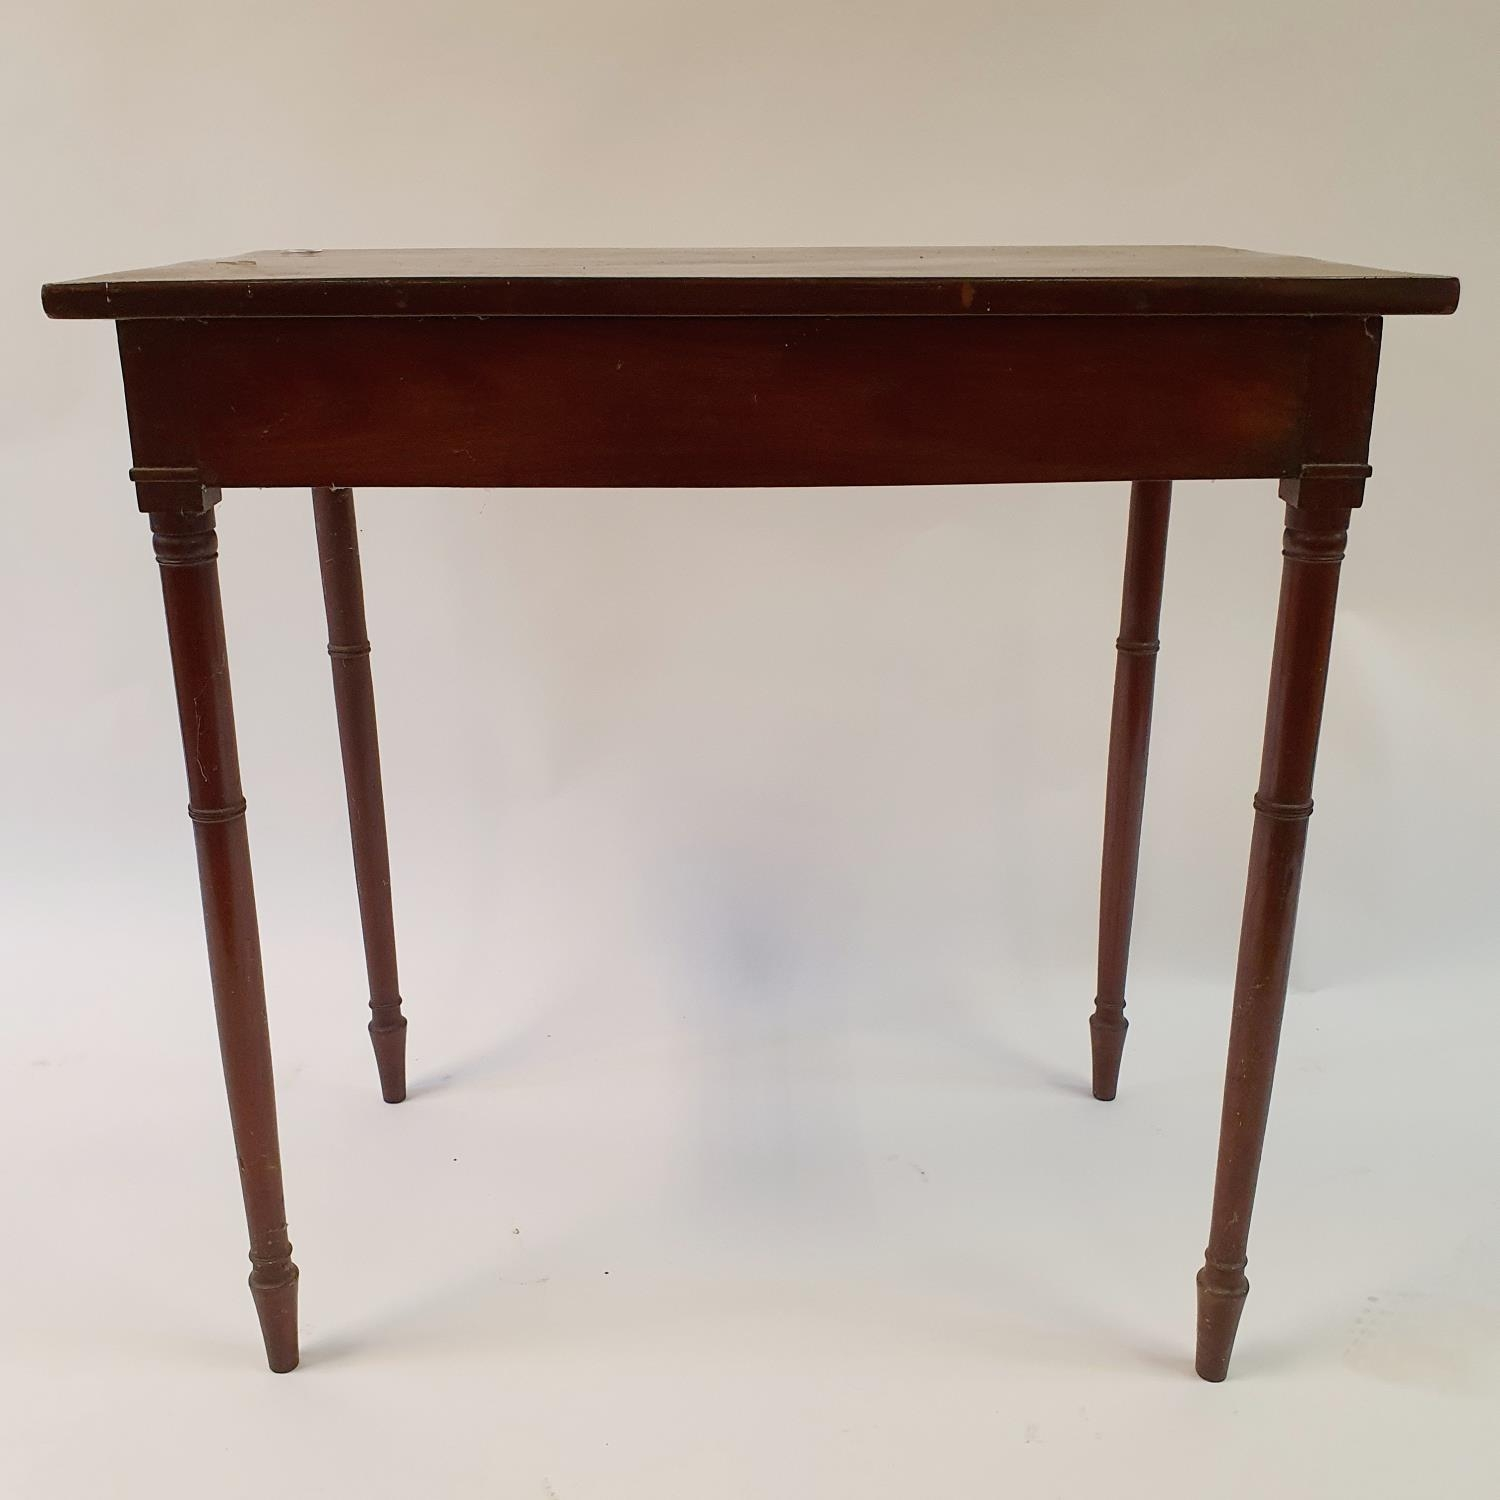 A mahogany side table, 76 cm wide - Image 2 of 3